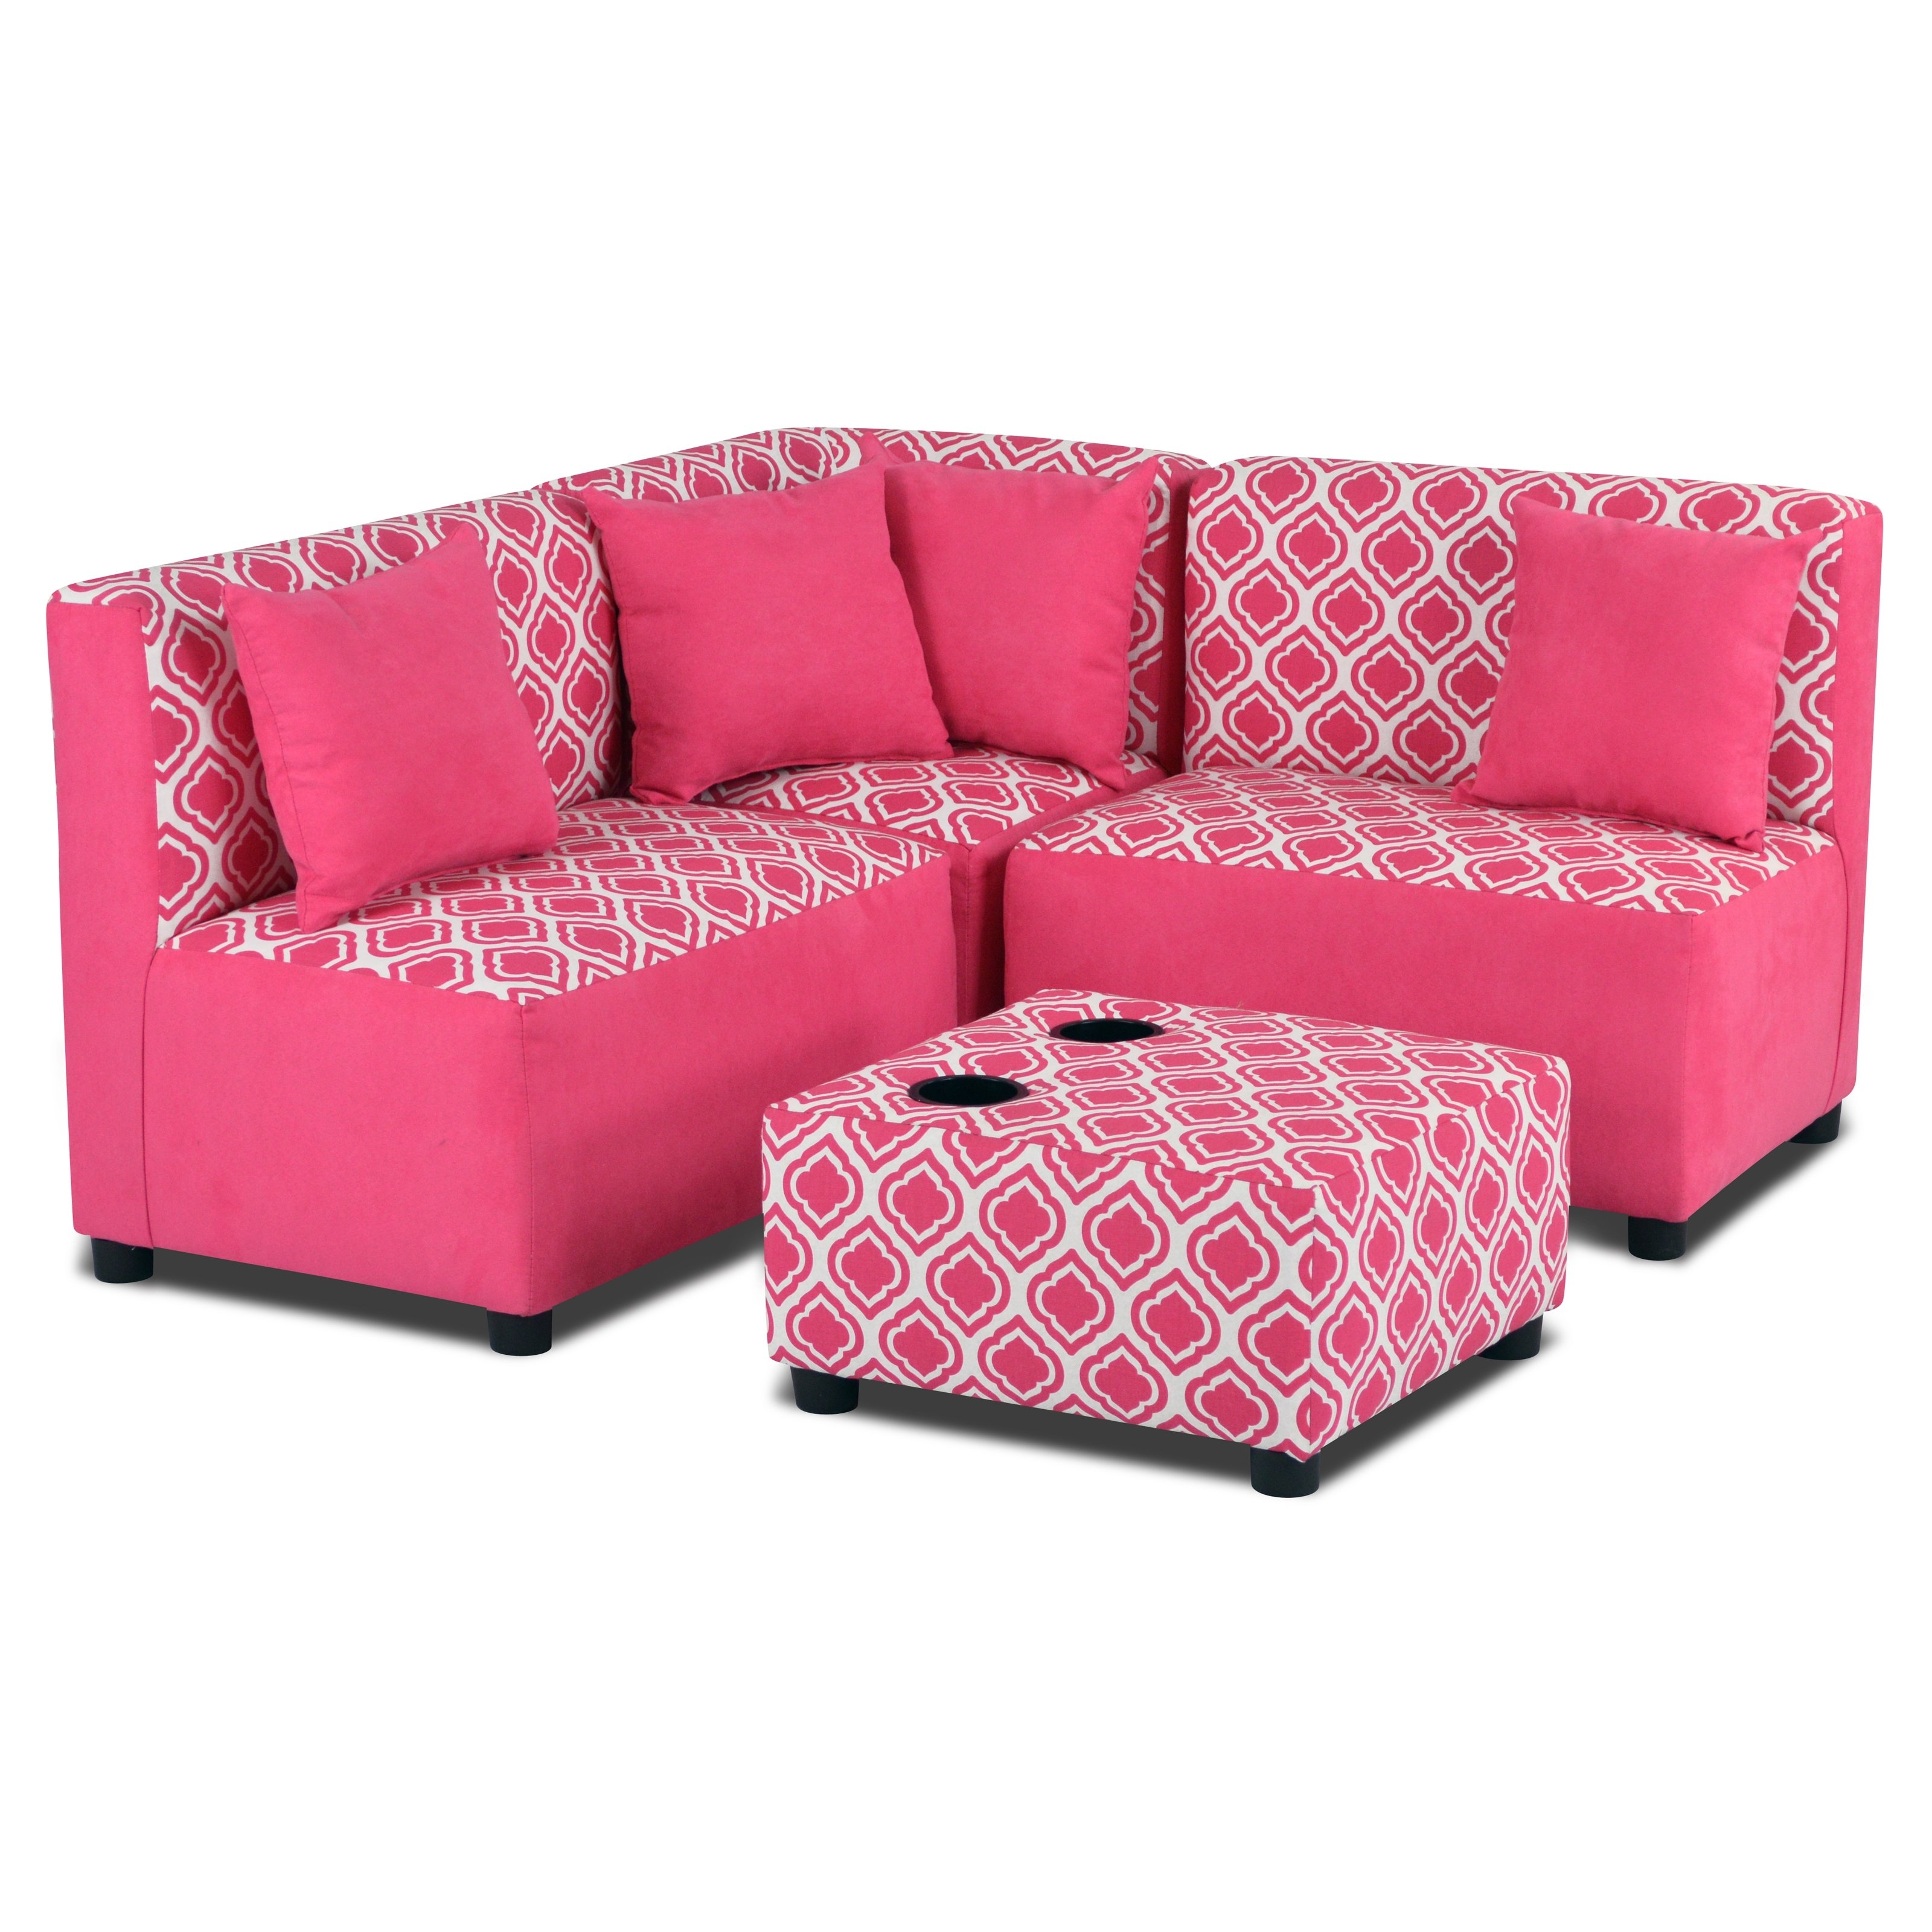 Childrens Sofas - Home And Textiles pertaining to Childrens Sofas (Image 4 of 10)